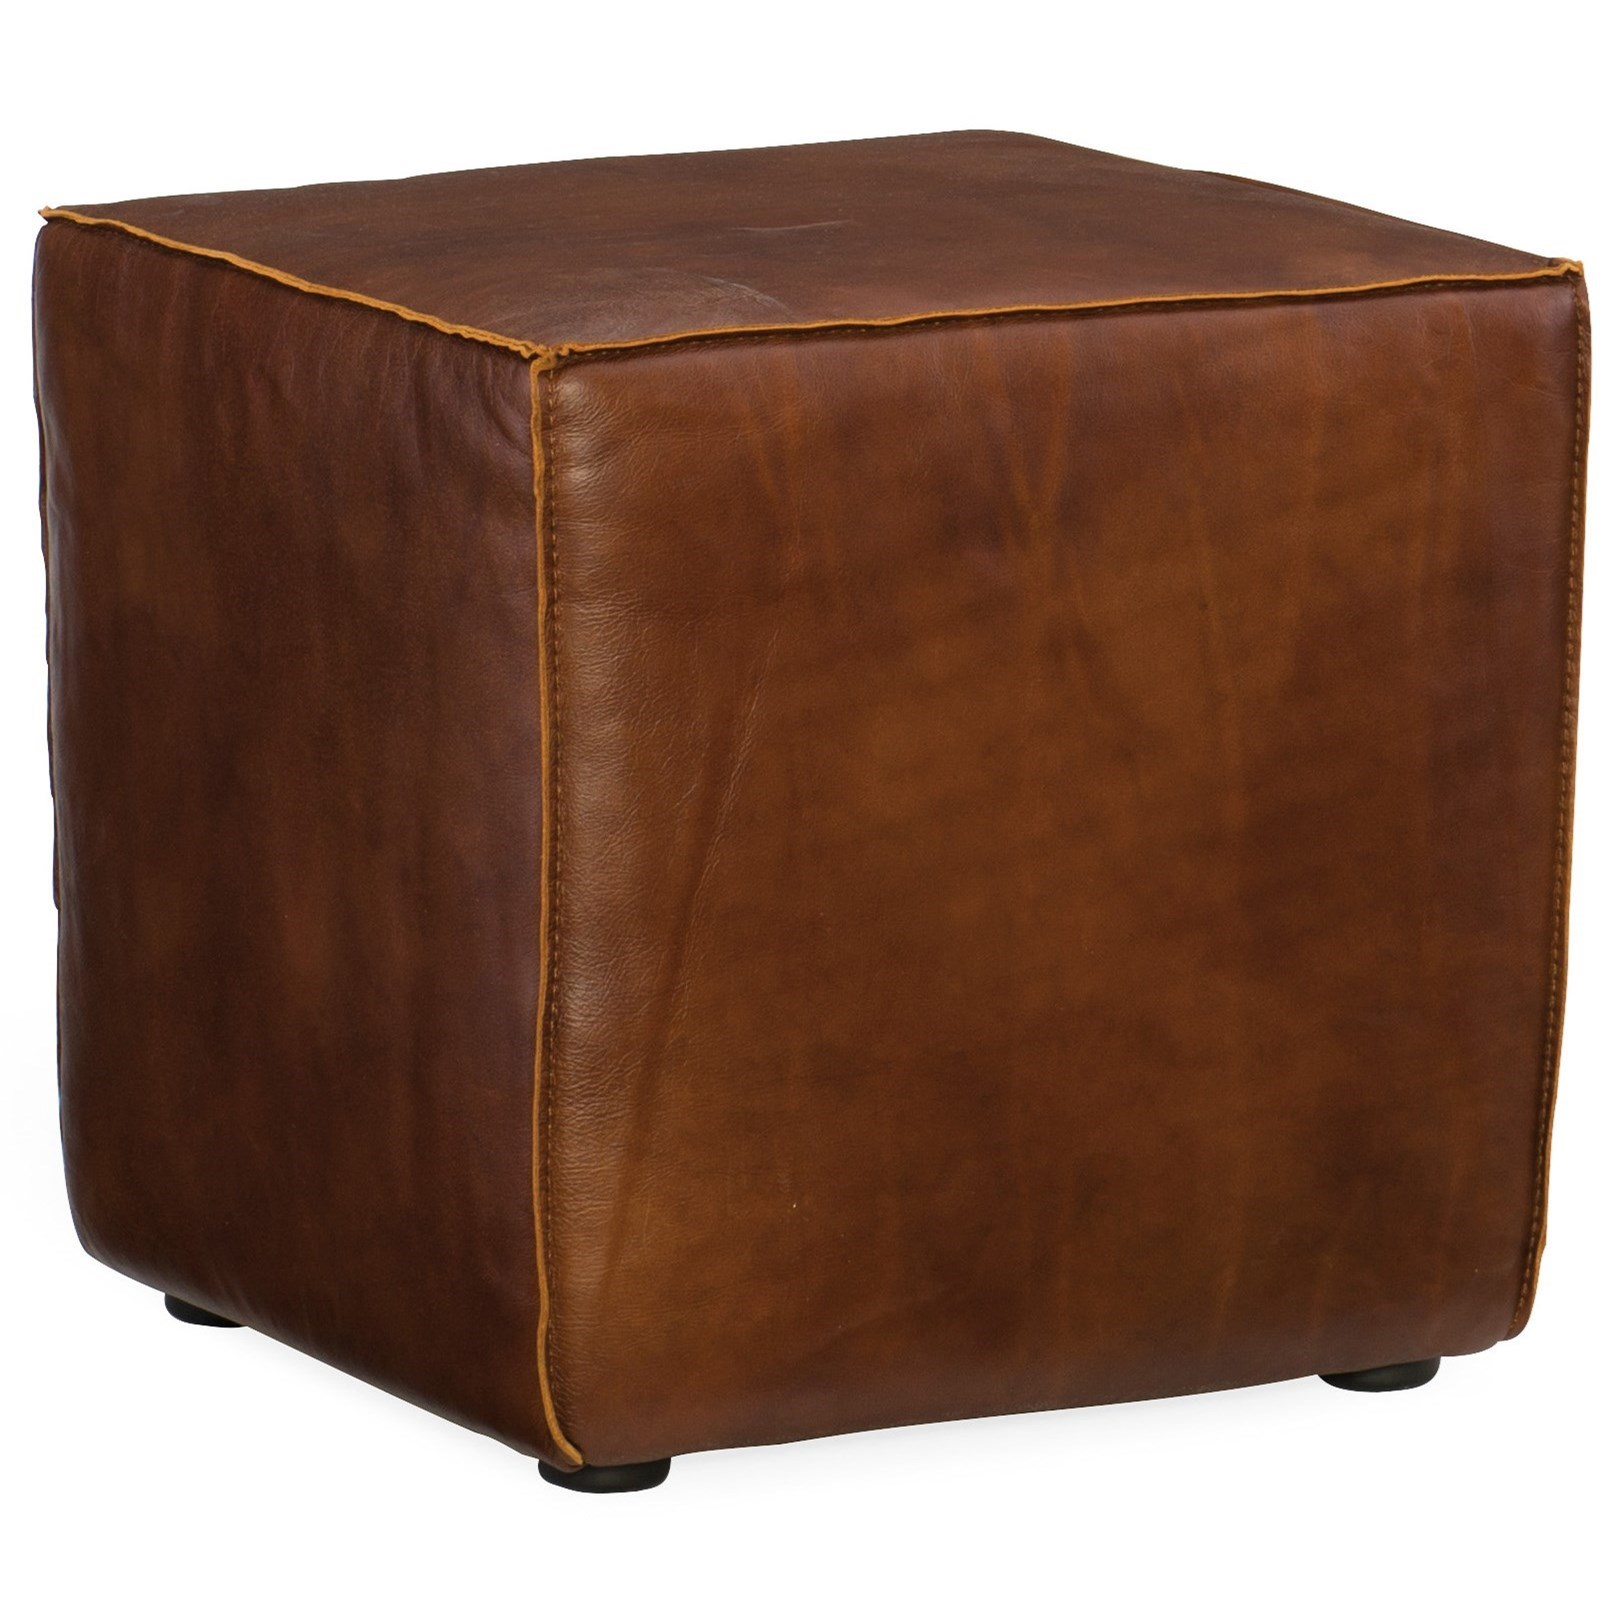 CO39 Quebert Cube Ottoman by Hooker Furniture at Miller Waldrop Furniture and Decor